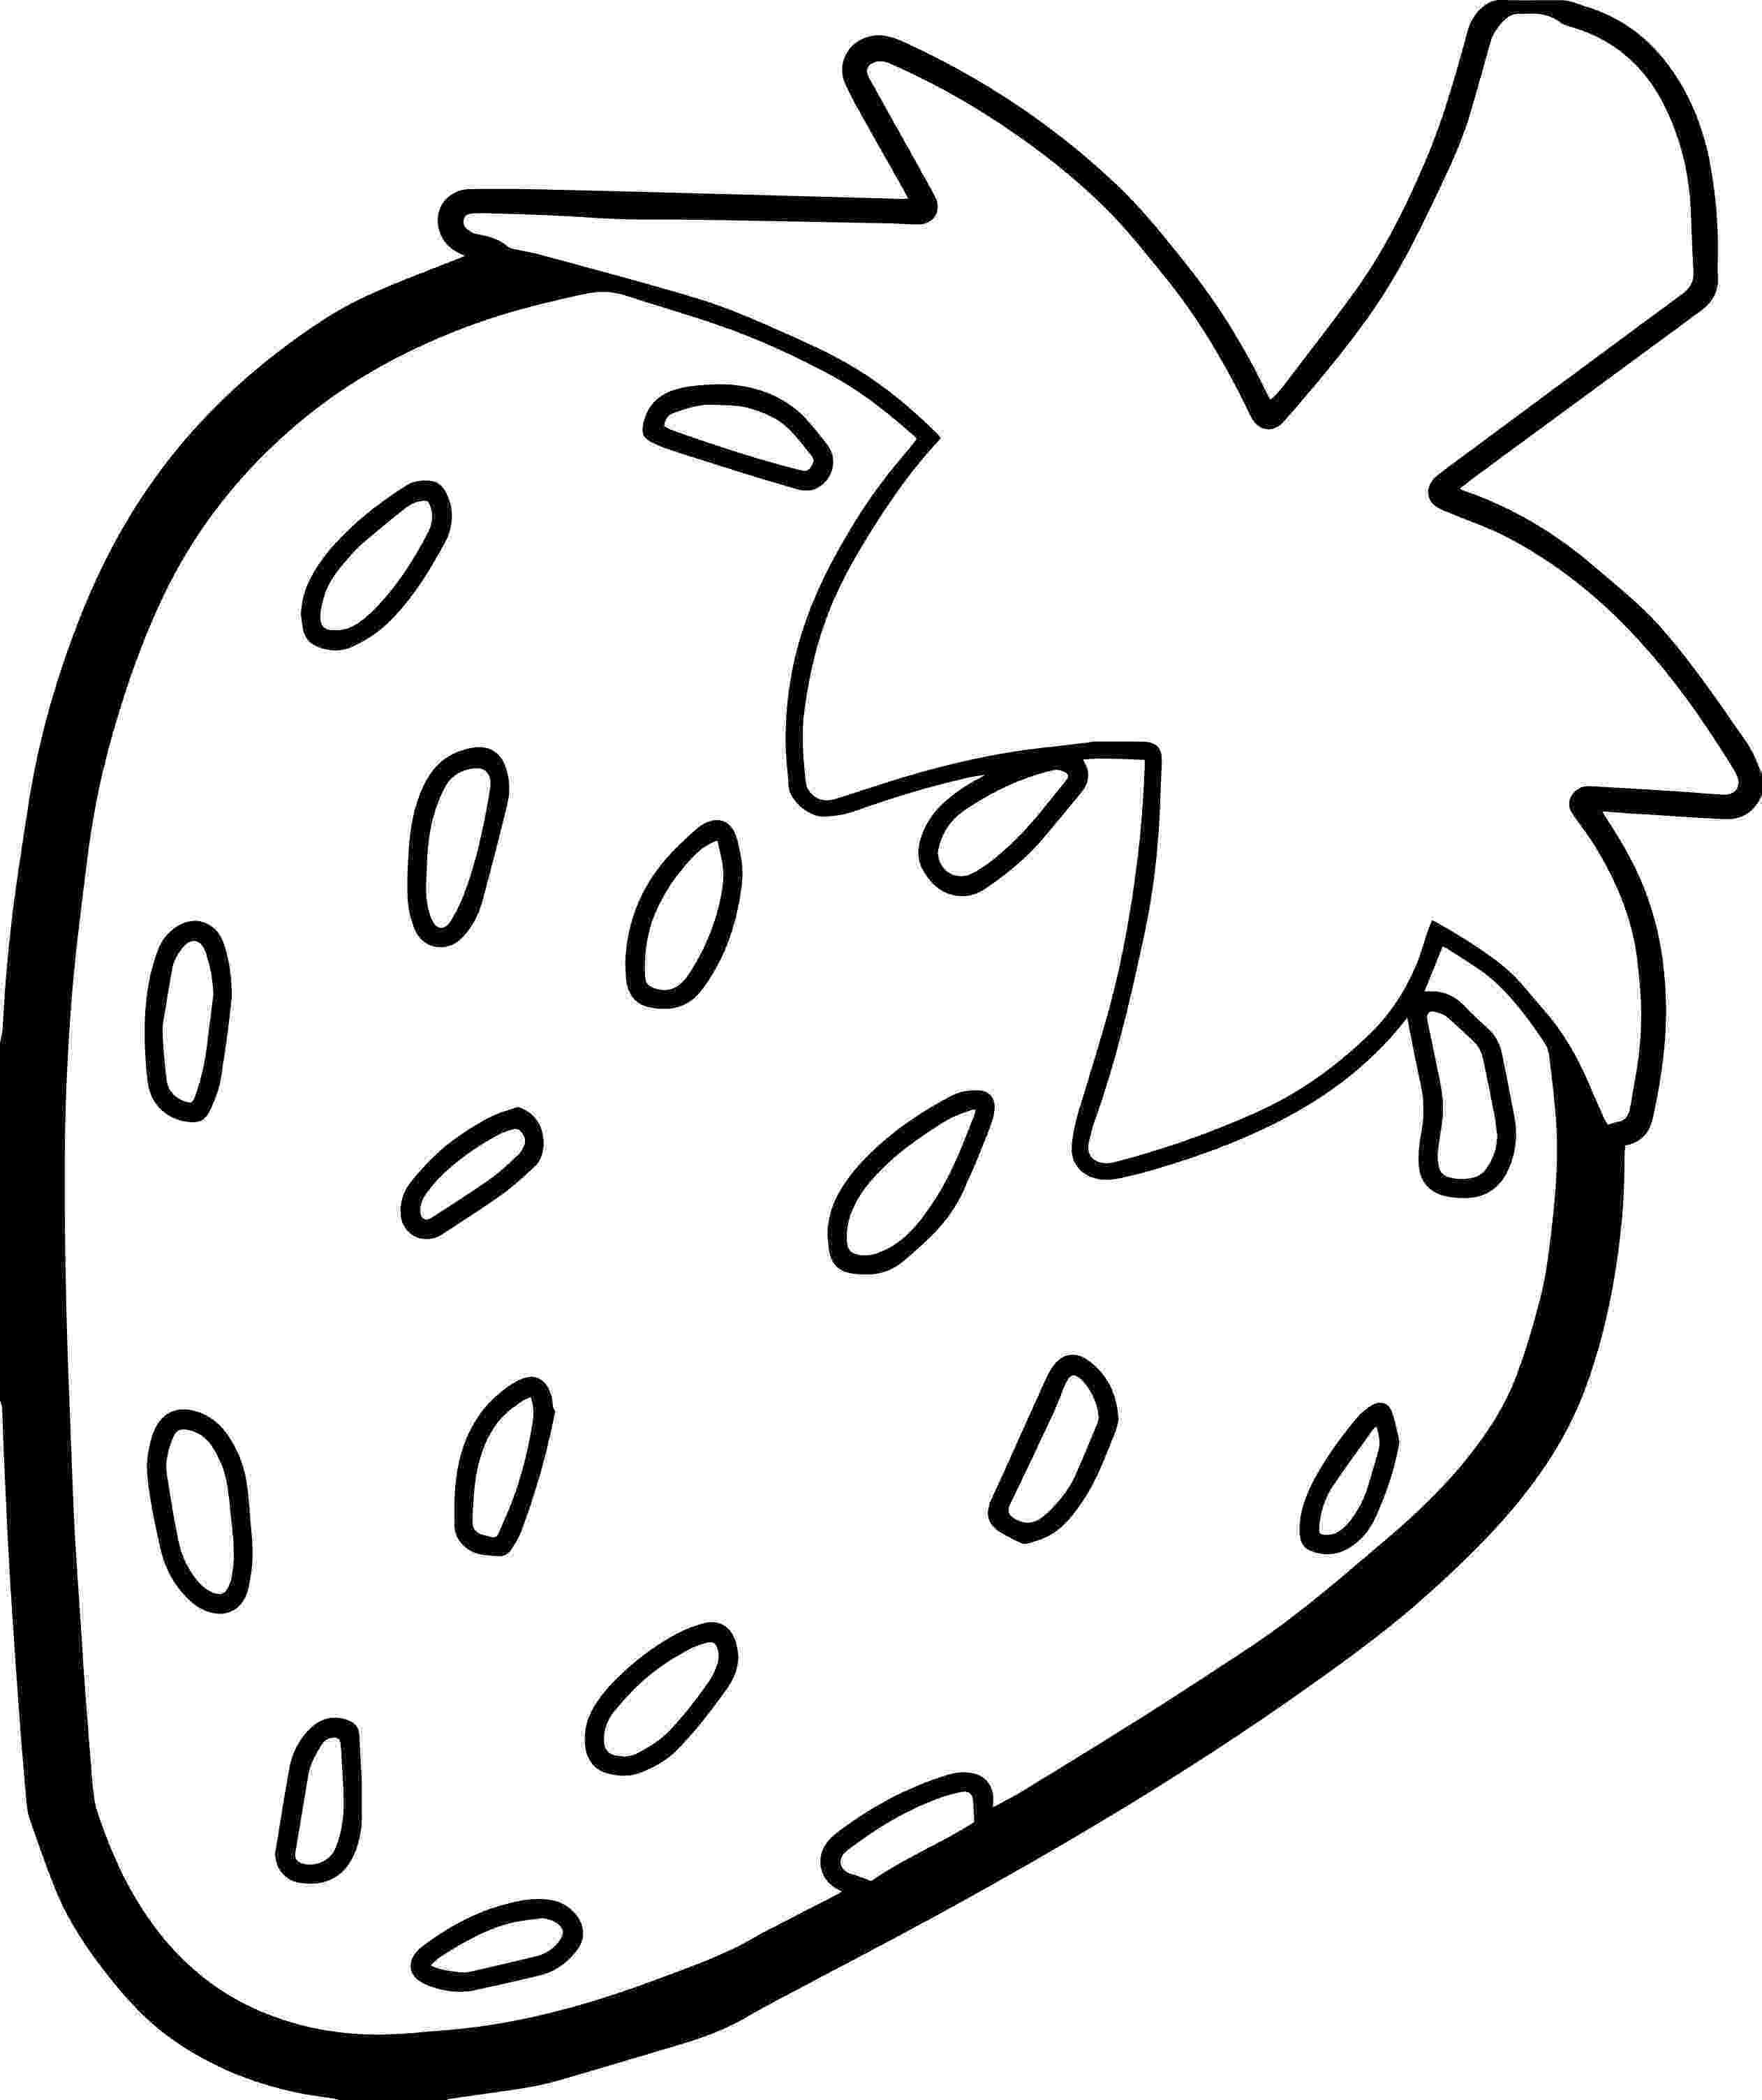 strawberry colouring page nice strawberry bold outline coloring page fruit page colouring strawberry